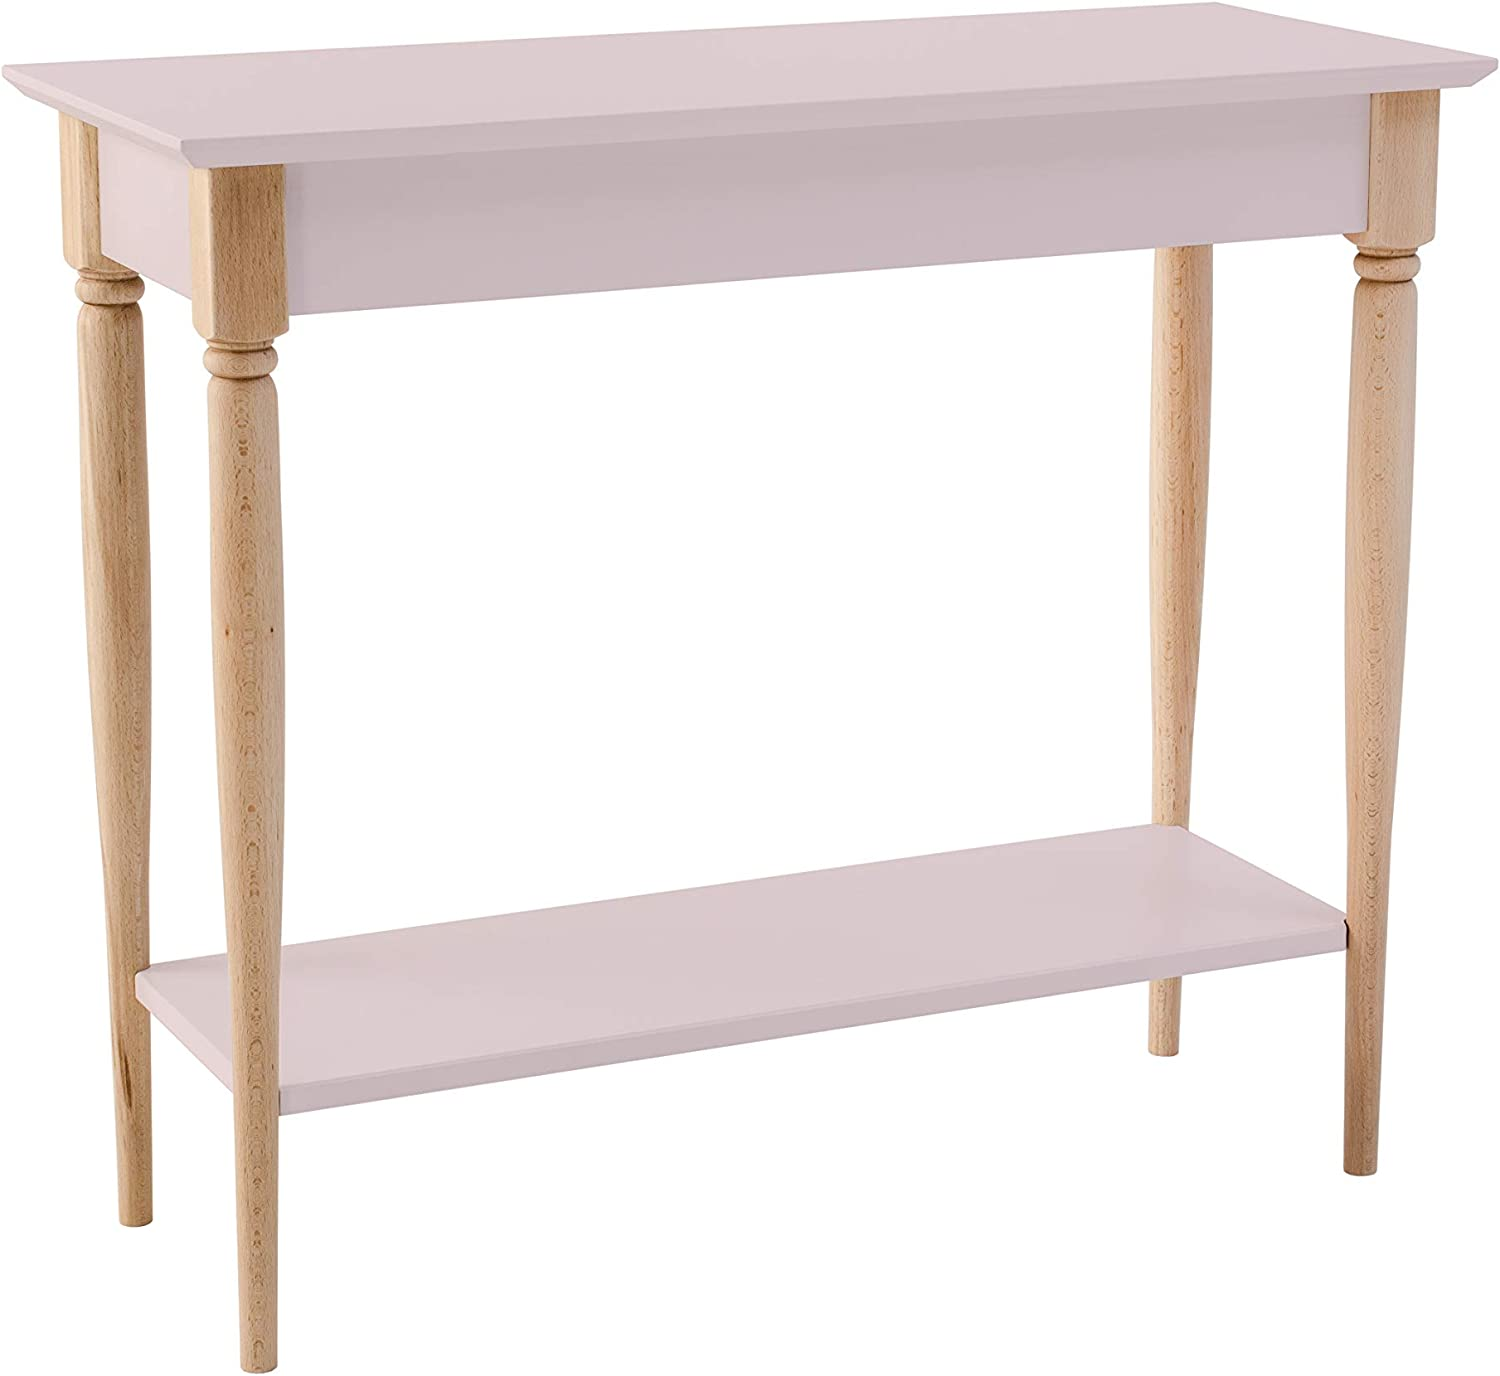 Mamo Console Table Side Table With Shelf Cheap Turned Legs Easy Assembly Fsc Wood Modern 85 X 35 Cm Pink Amazon Co Uk Kitchen Home